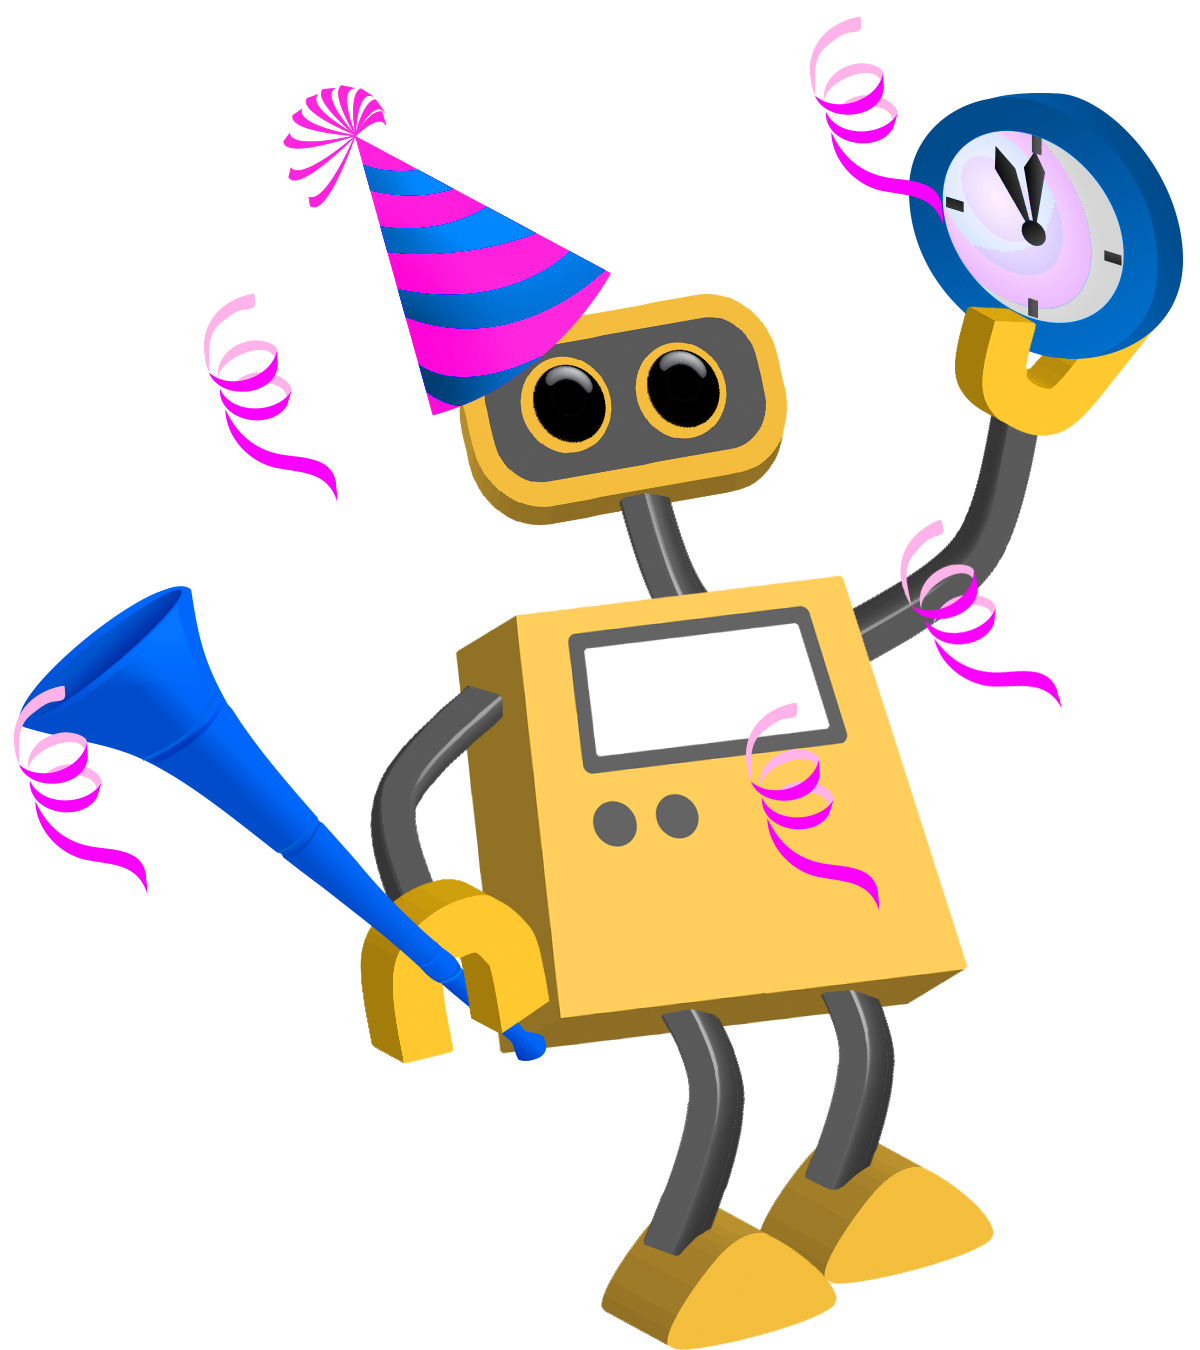 Horn clipart tool. Robot happy new year